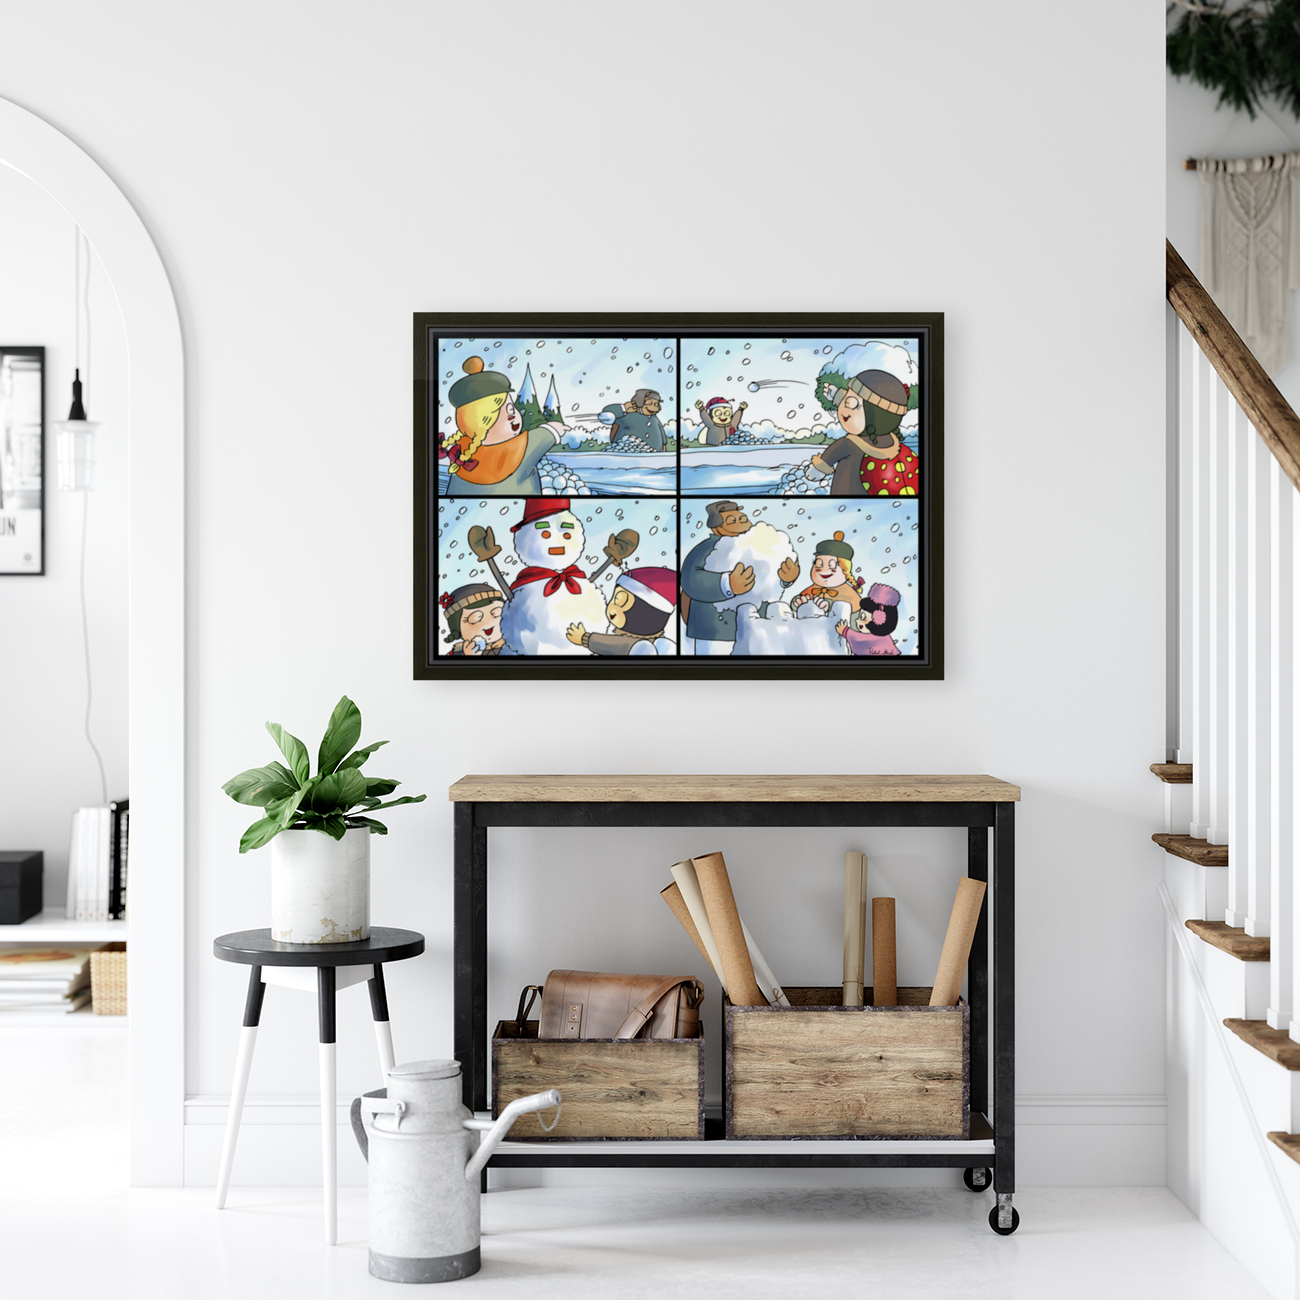 Winter Wonderland Fun   Snowballs  Snowforts and Snowman   4 panel Favorites for Kids Room and Nursery   Bugville Critters  Art